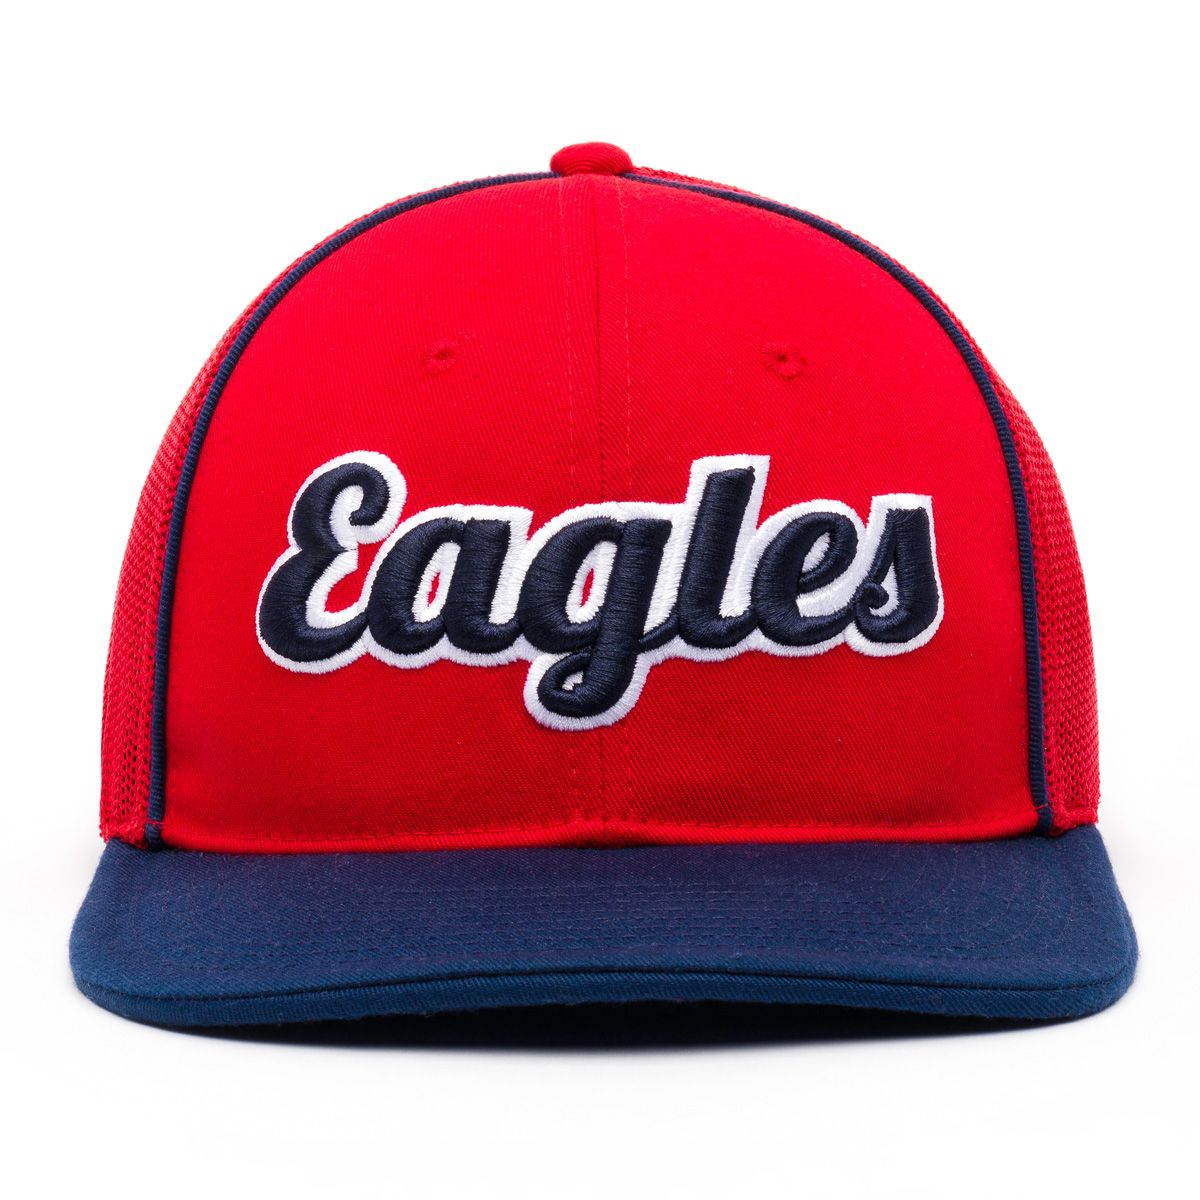 custom embroidered hat eagles design